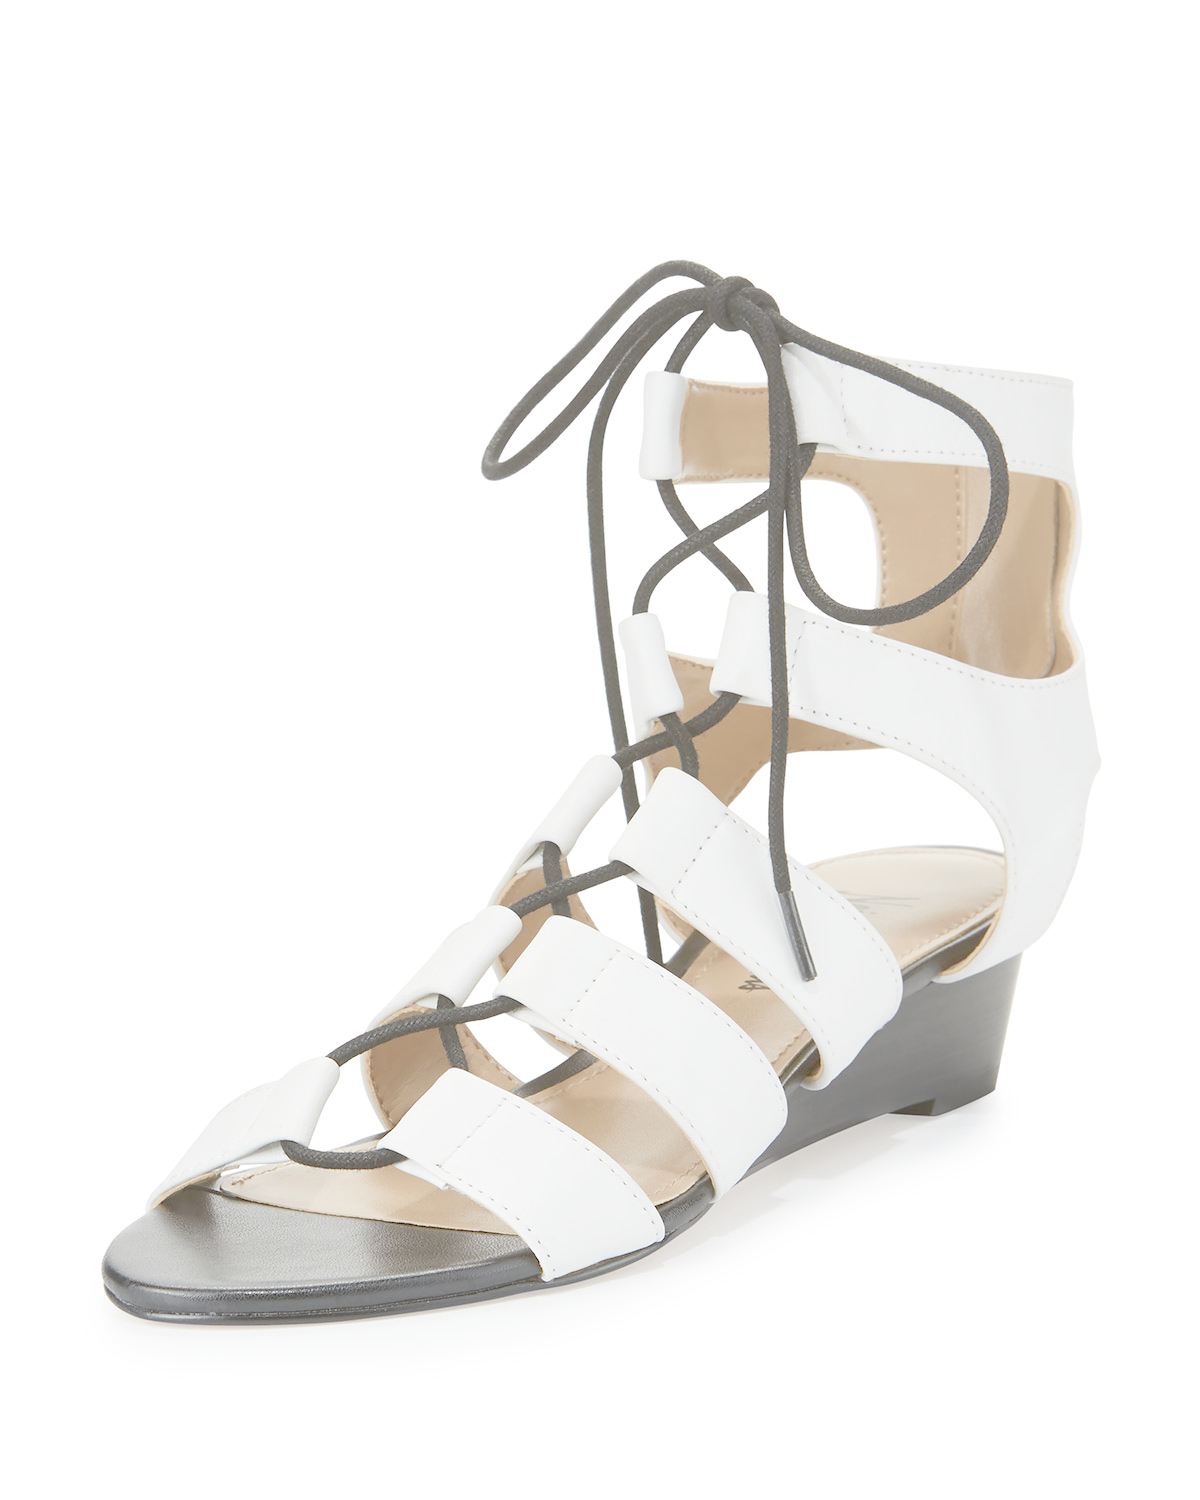 Lyst - Neiman Marcus Wista Leather Lace-up Sandal in White